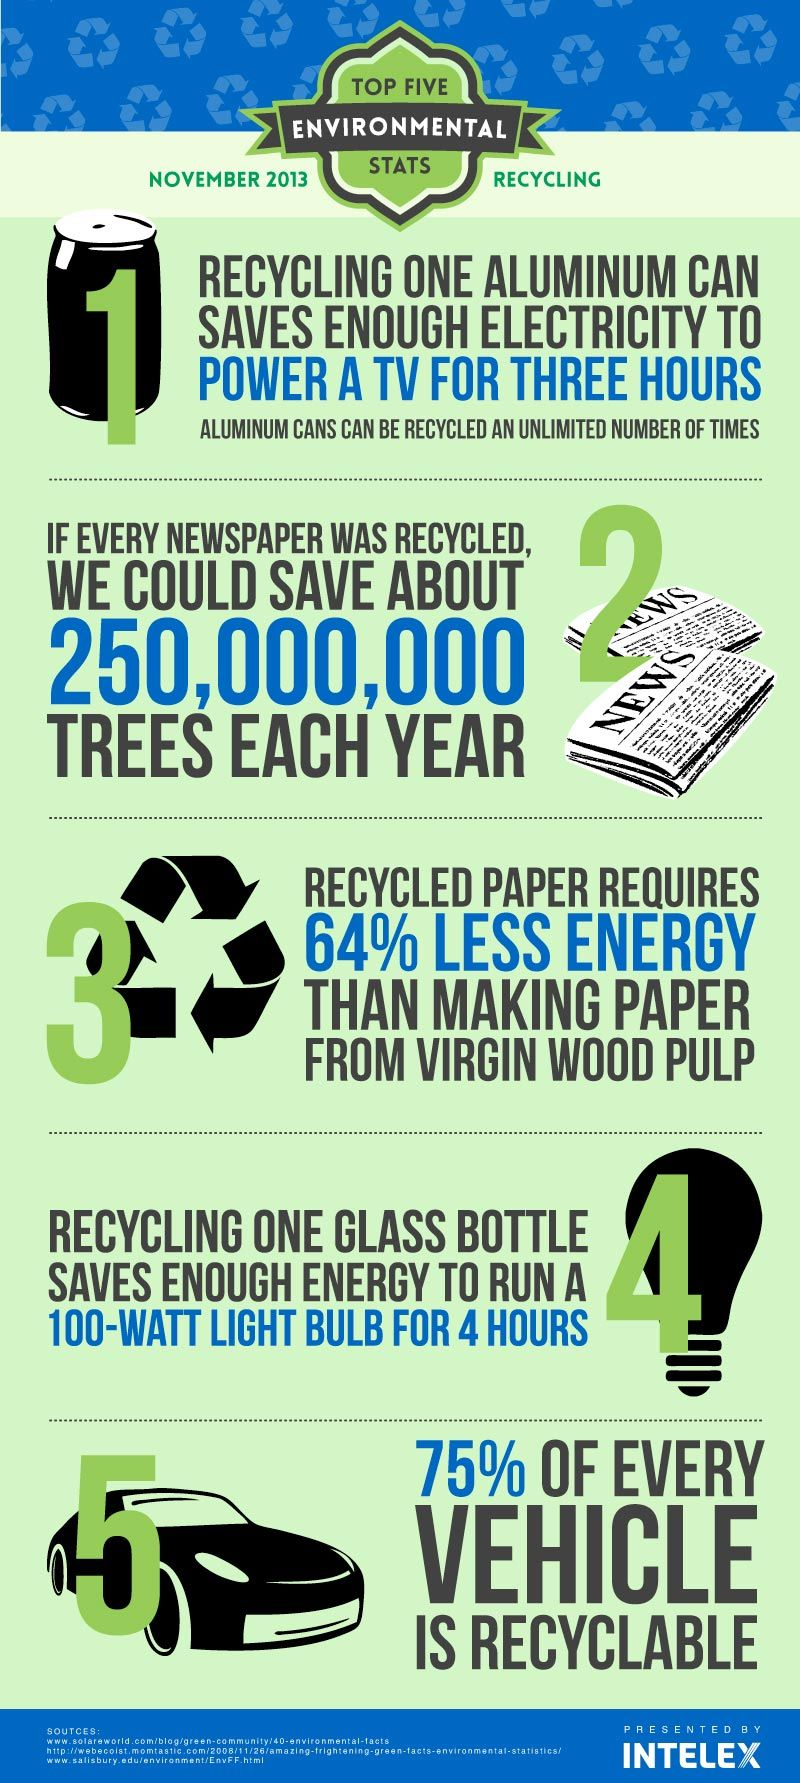 Environmental Education Resources Recycling Facts Environmental